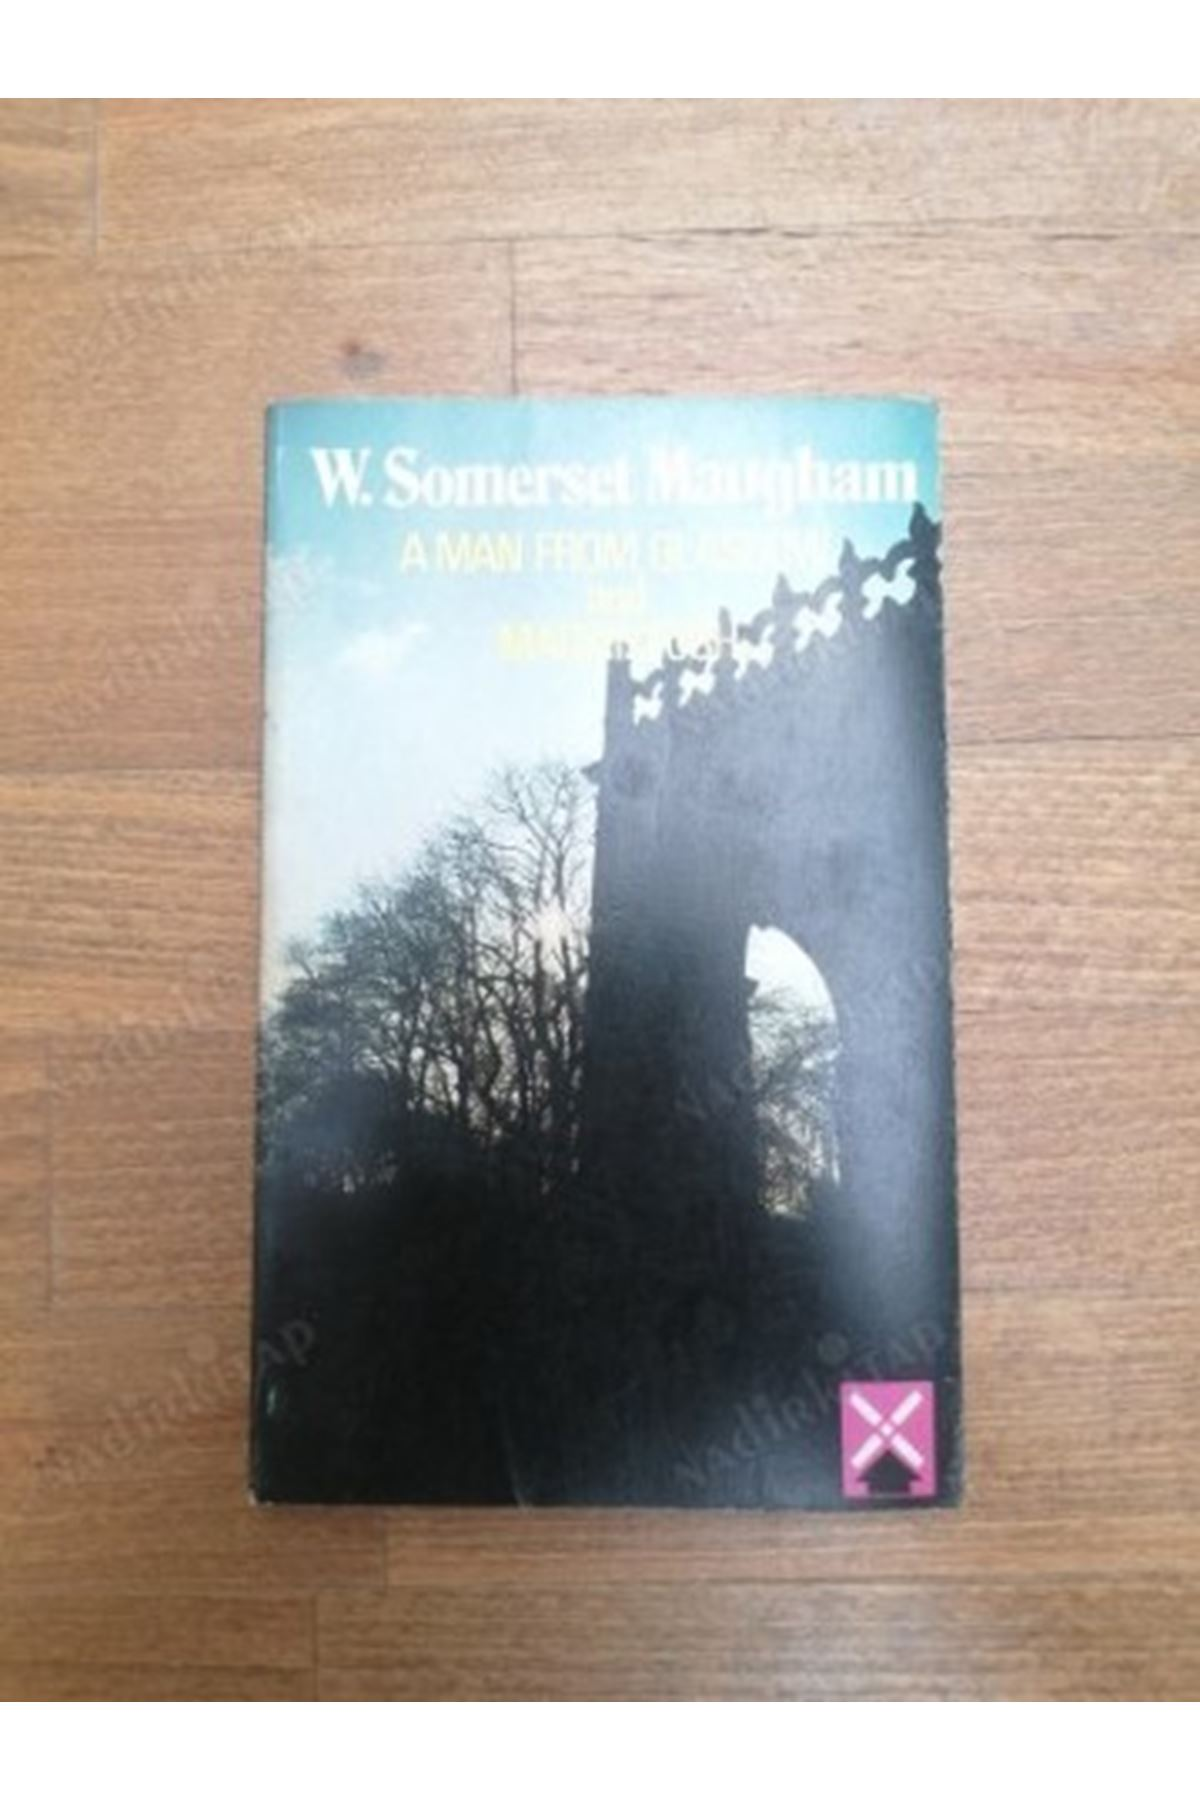 W. SOMERSET MAUGHAM - A MAN FROM GLASGOW AND MACKİNTOSH